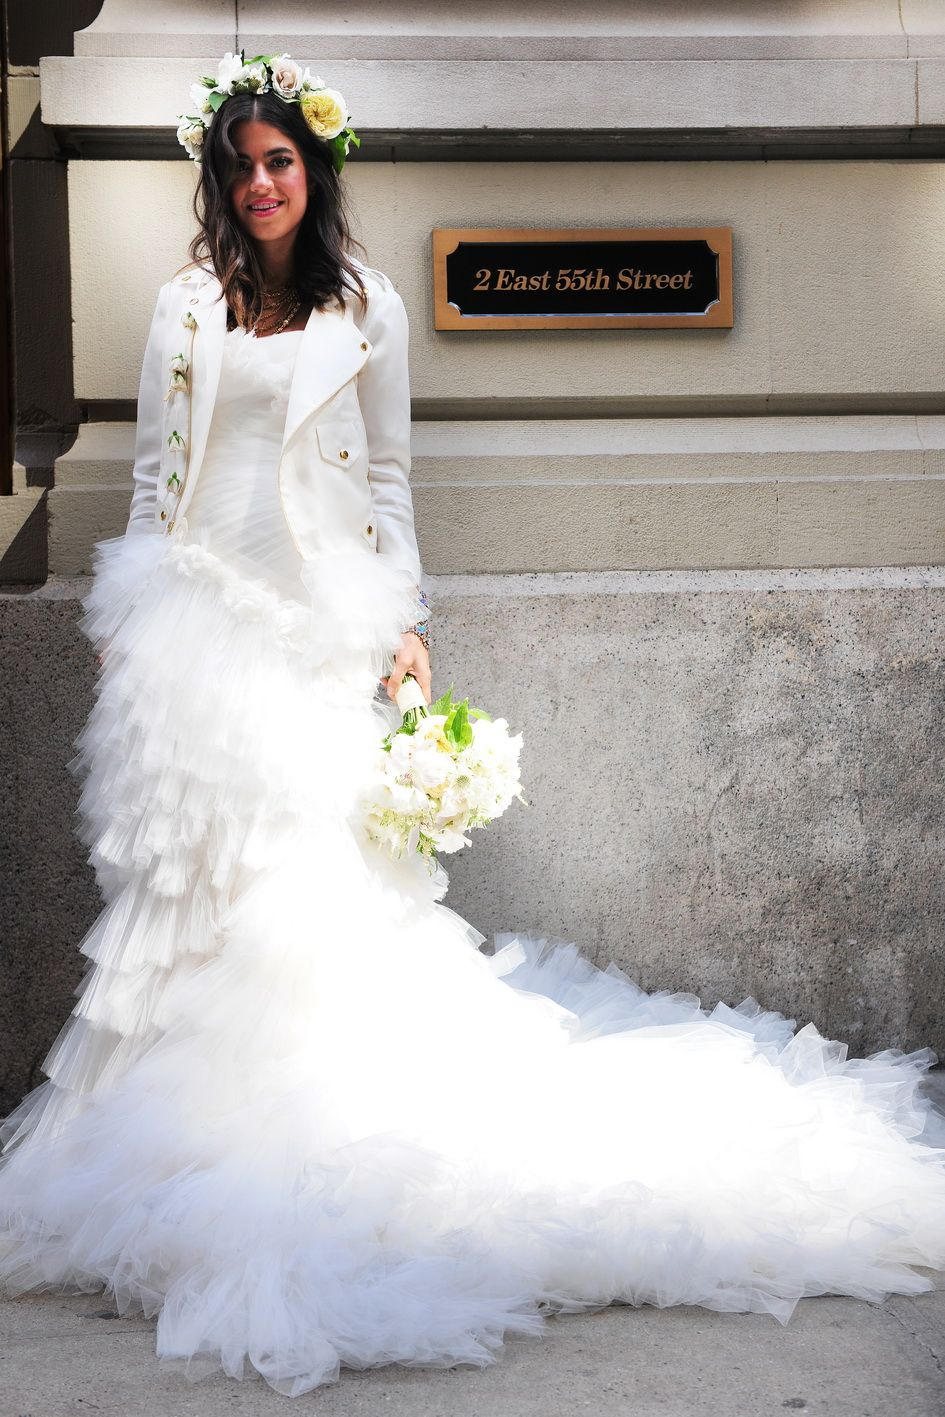 Leather jacket over wedding dress